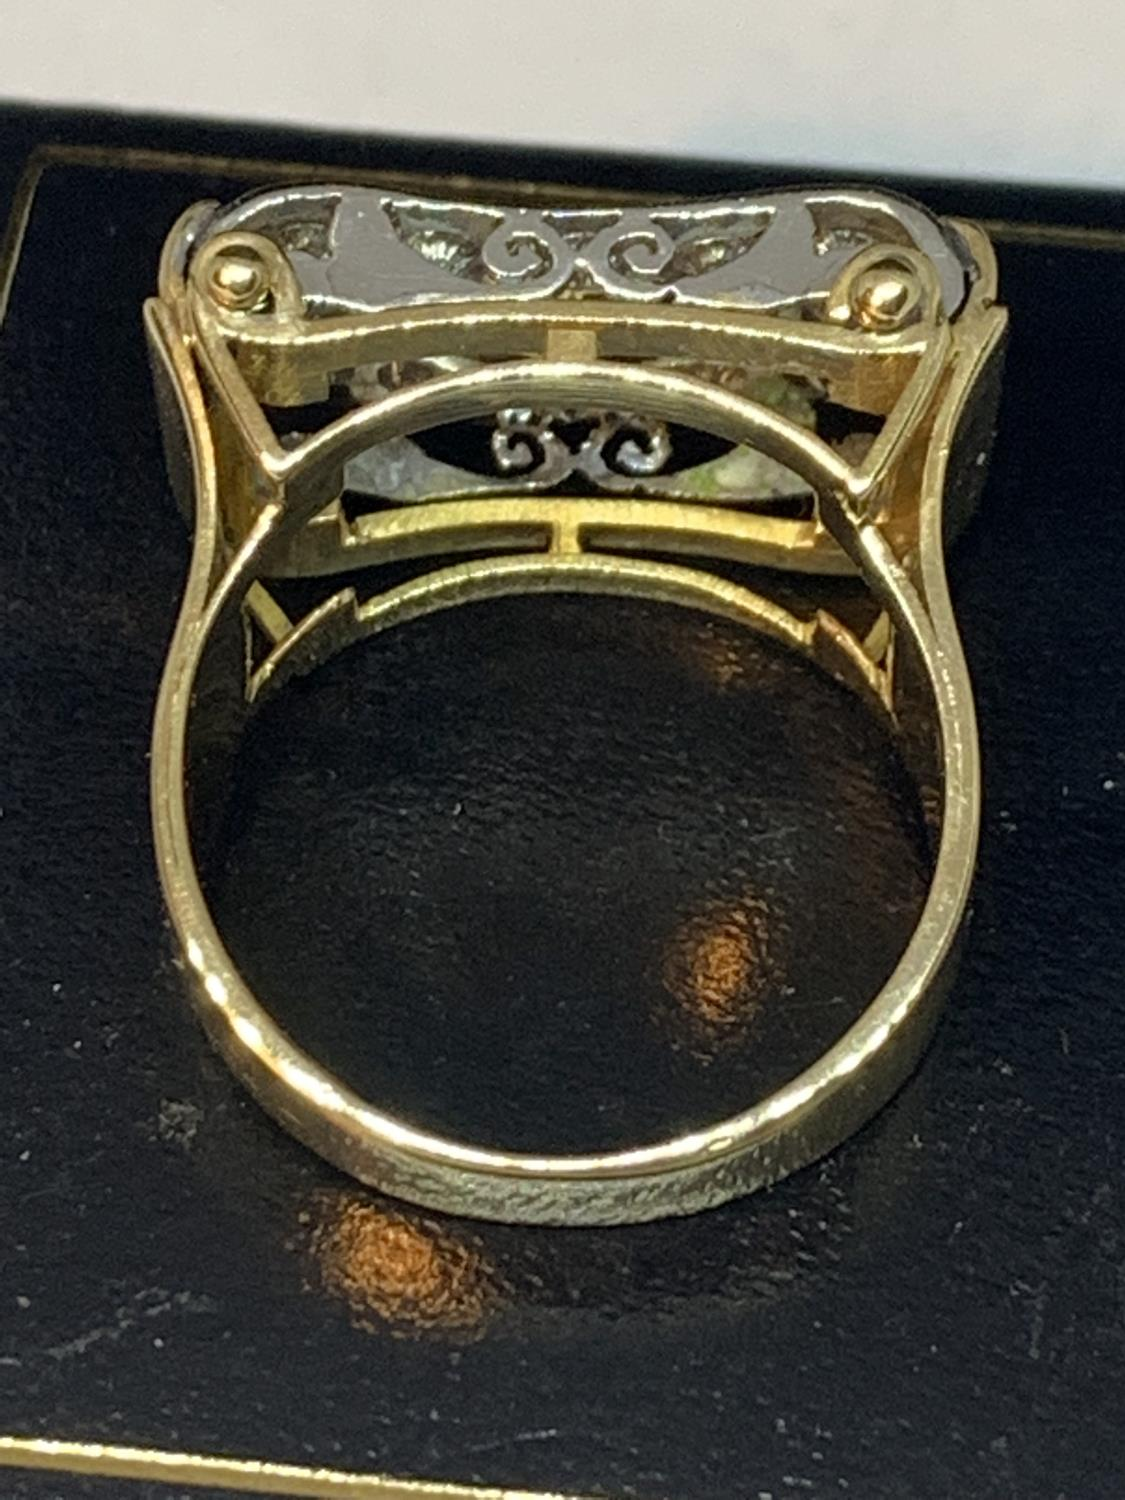 A HEAVY 18 CARAT GOLD RING WITH FIFTEEN DIAMONDS SET IN A RECTANGLE OF DIAMOND CHIPS GROSS WEIGHT 13 - Image 10 of 10